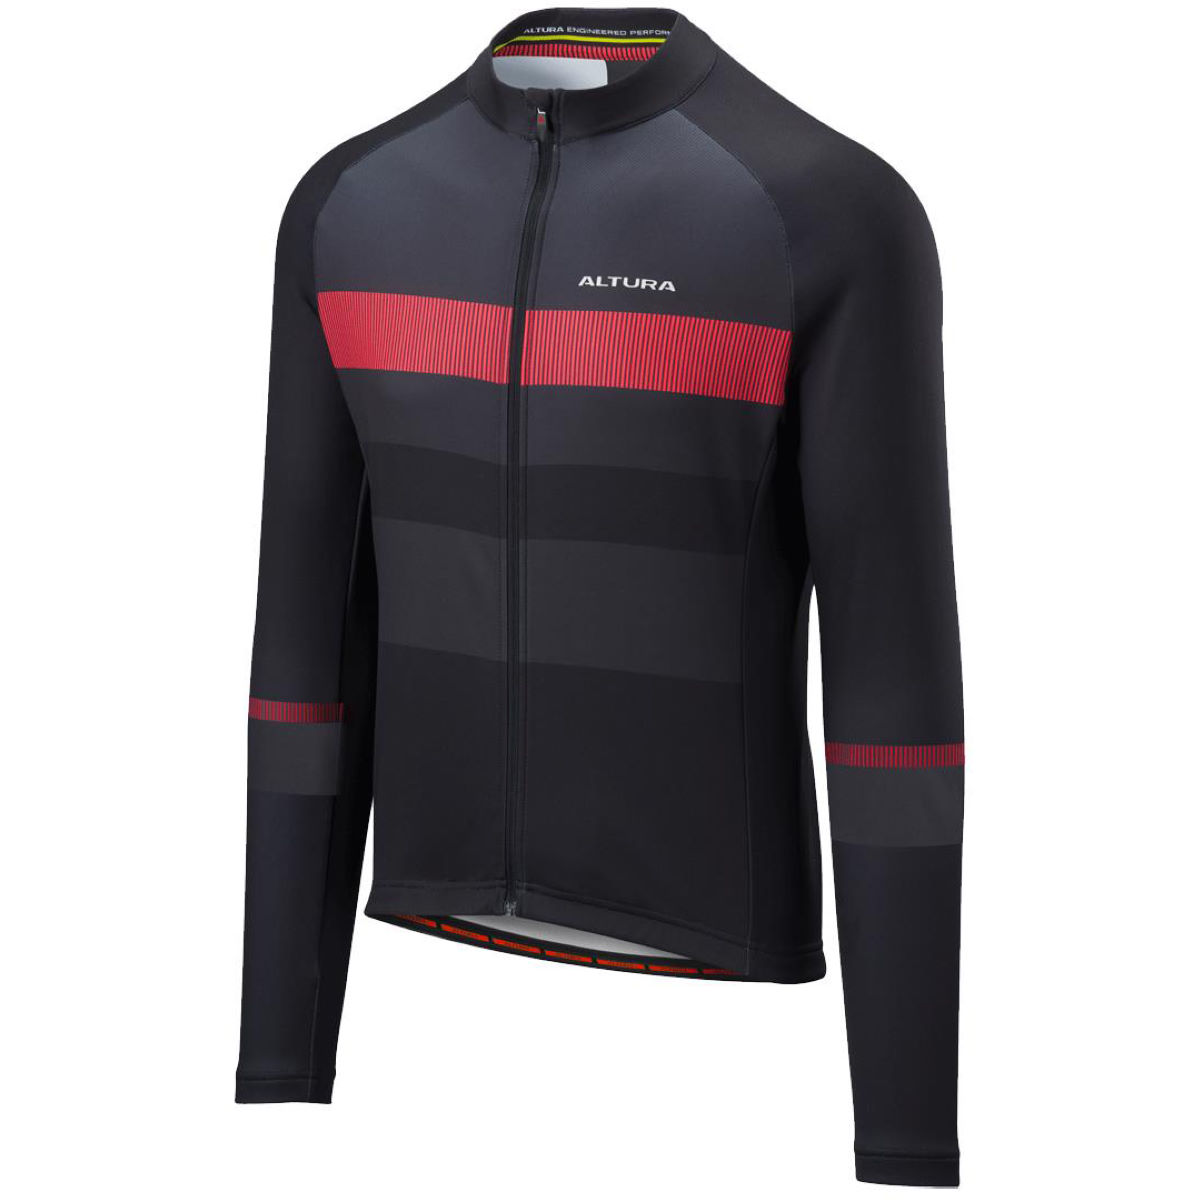 Altura Airstream Long Sleeve Jersey - Maillots